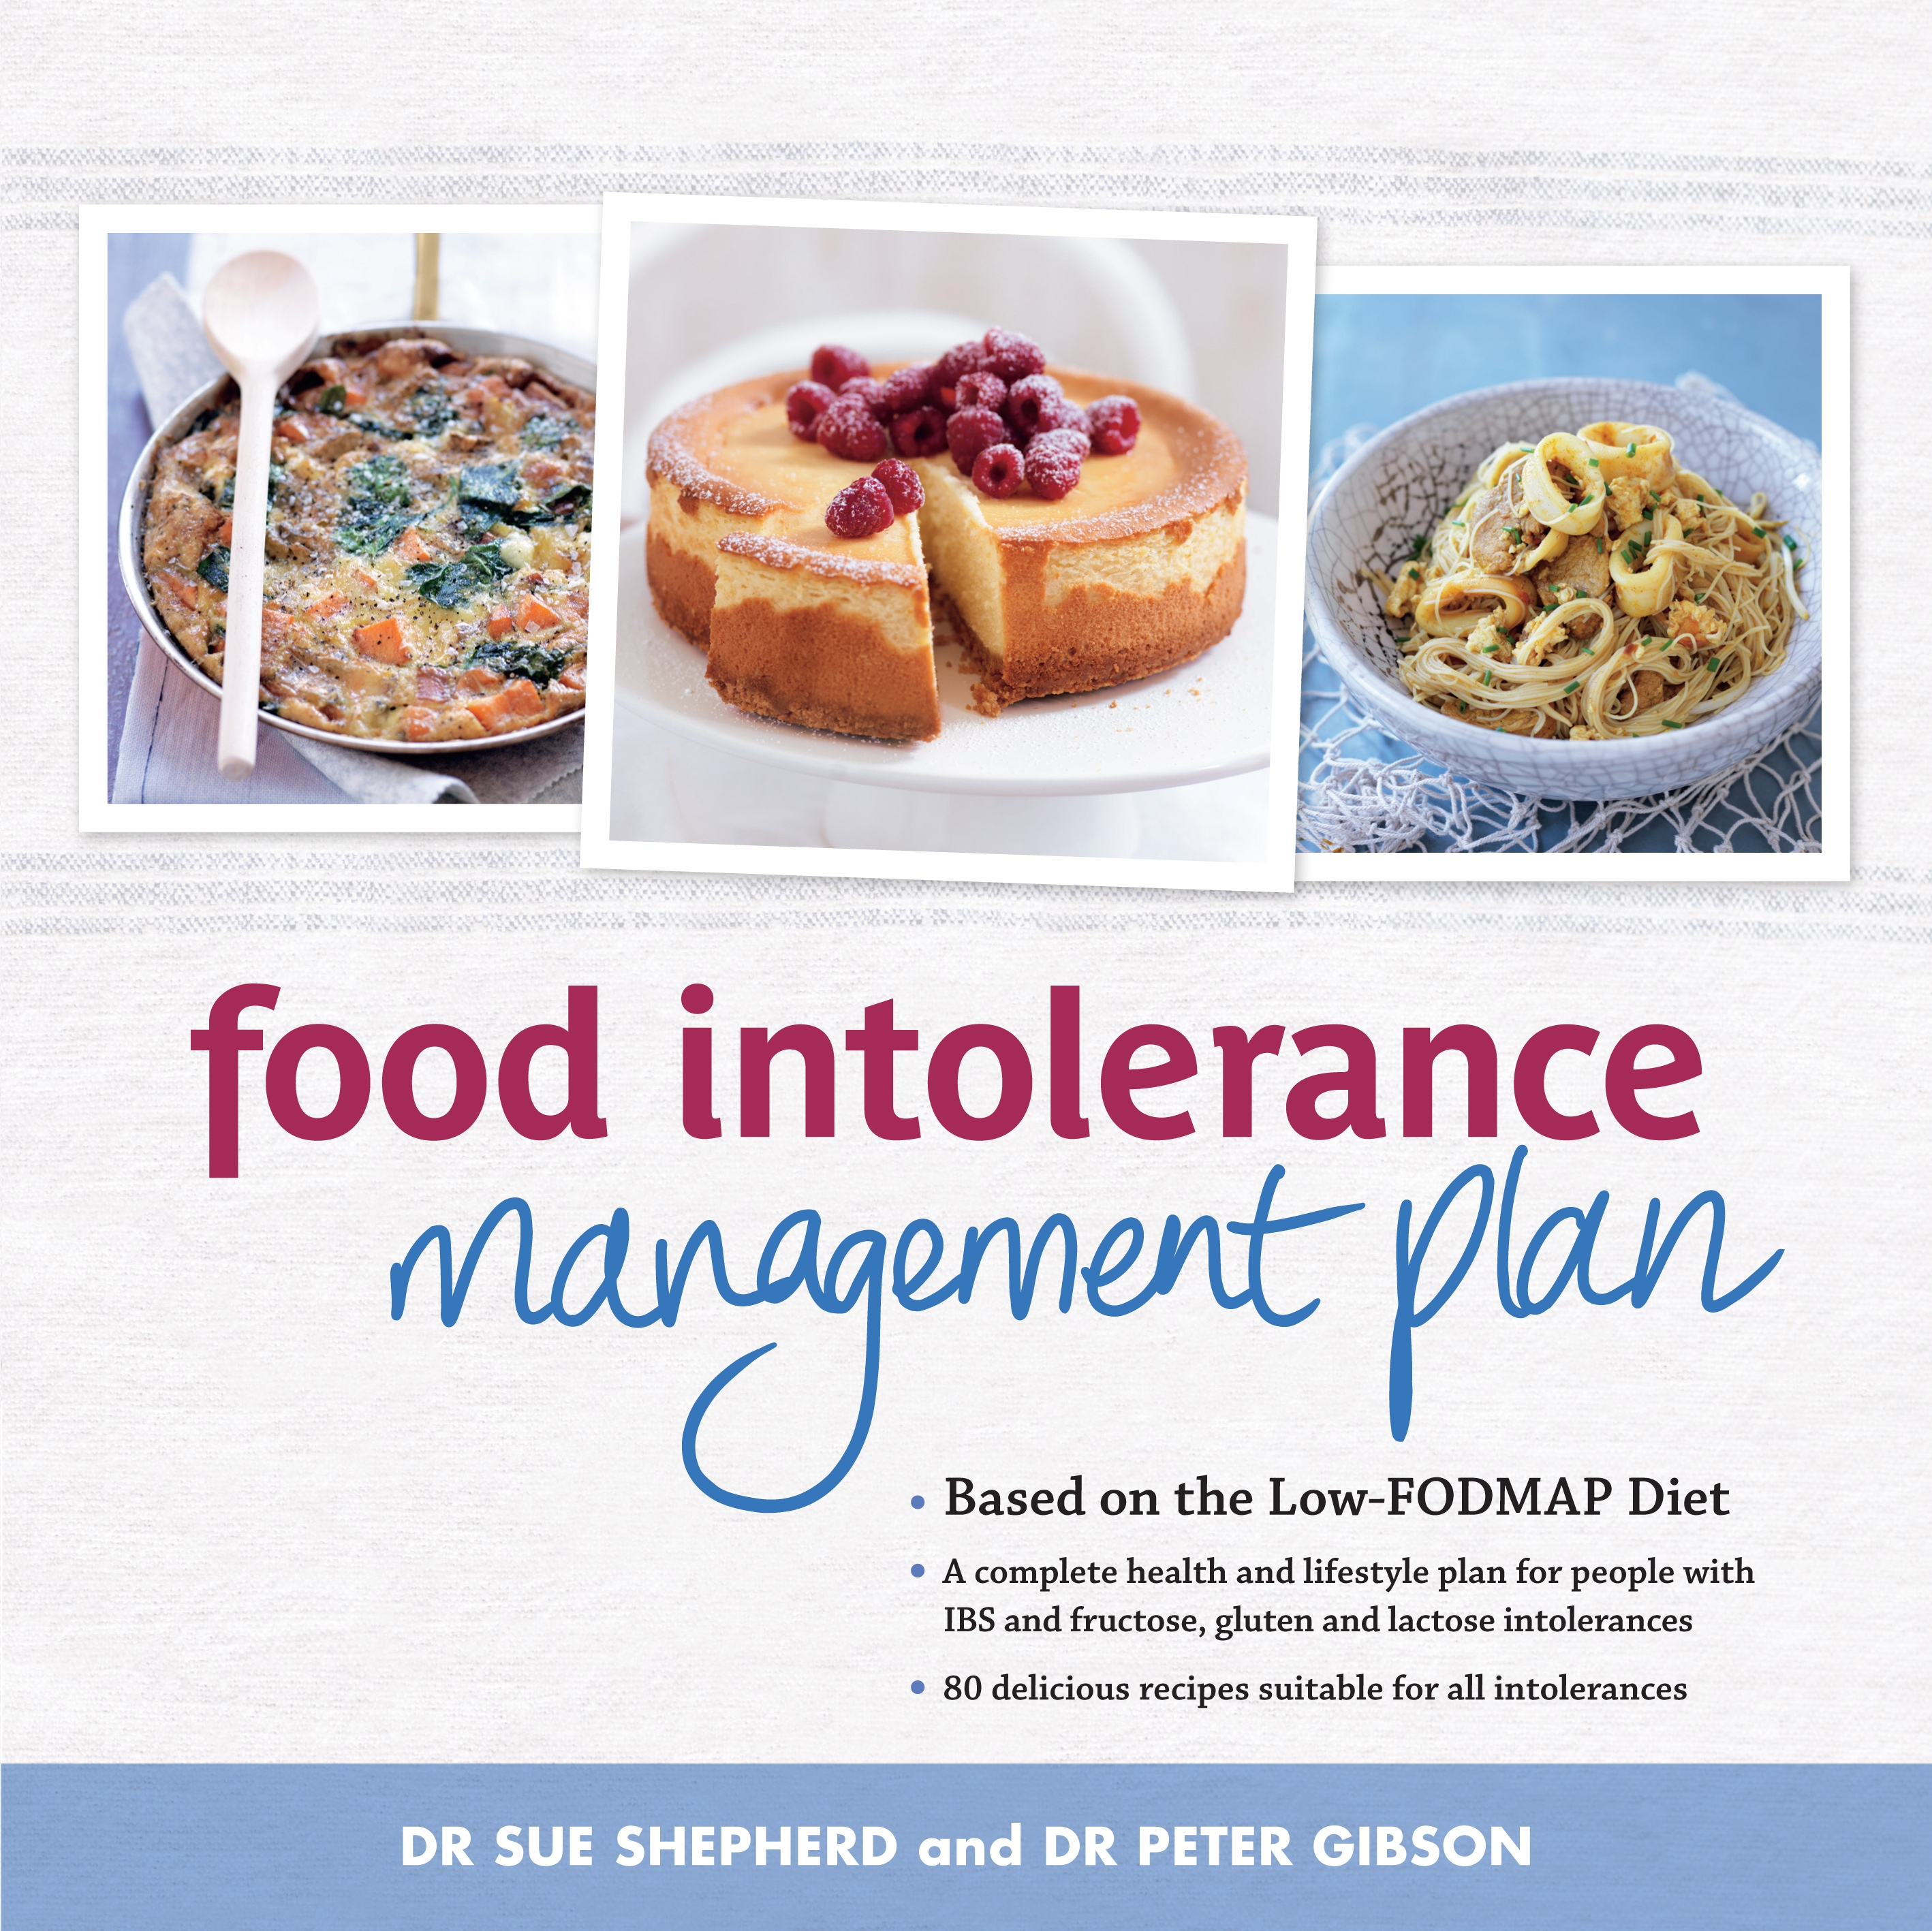 Food intolerance management plan by peter gibson penguin books hi res cover food intolerance management plan forumfinder Gallery